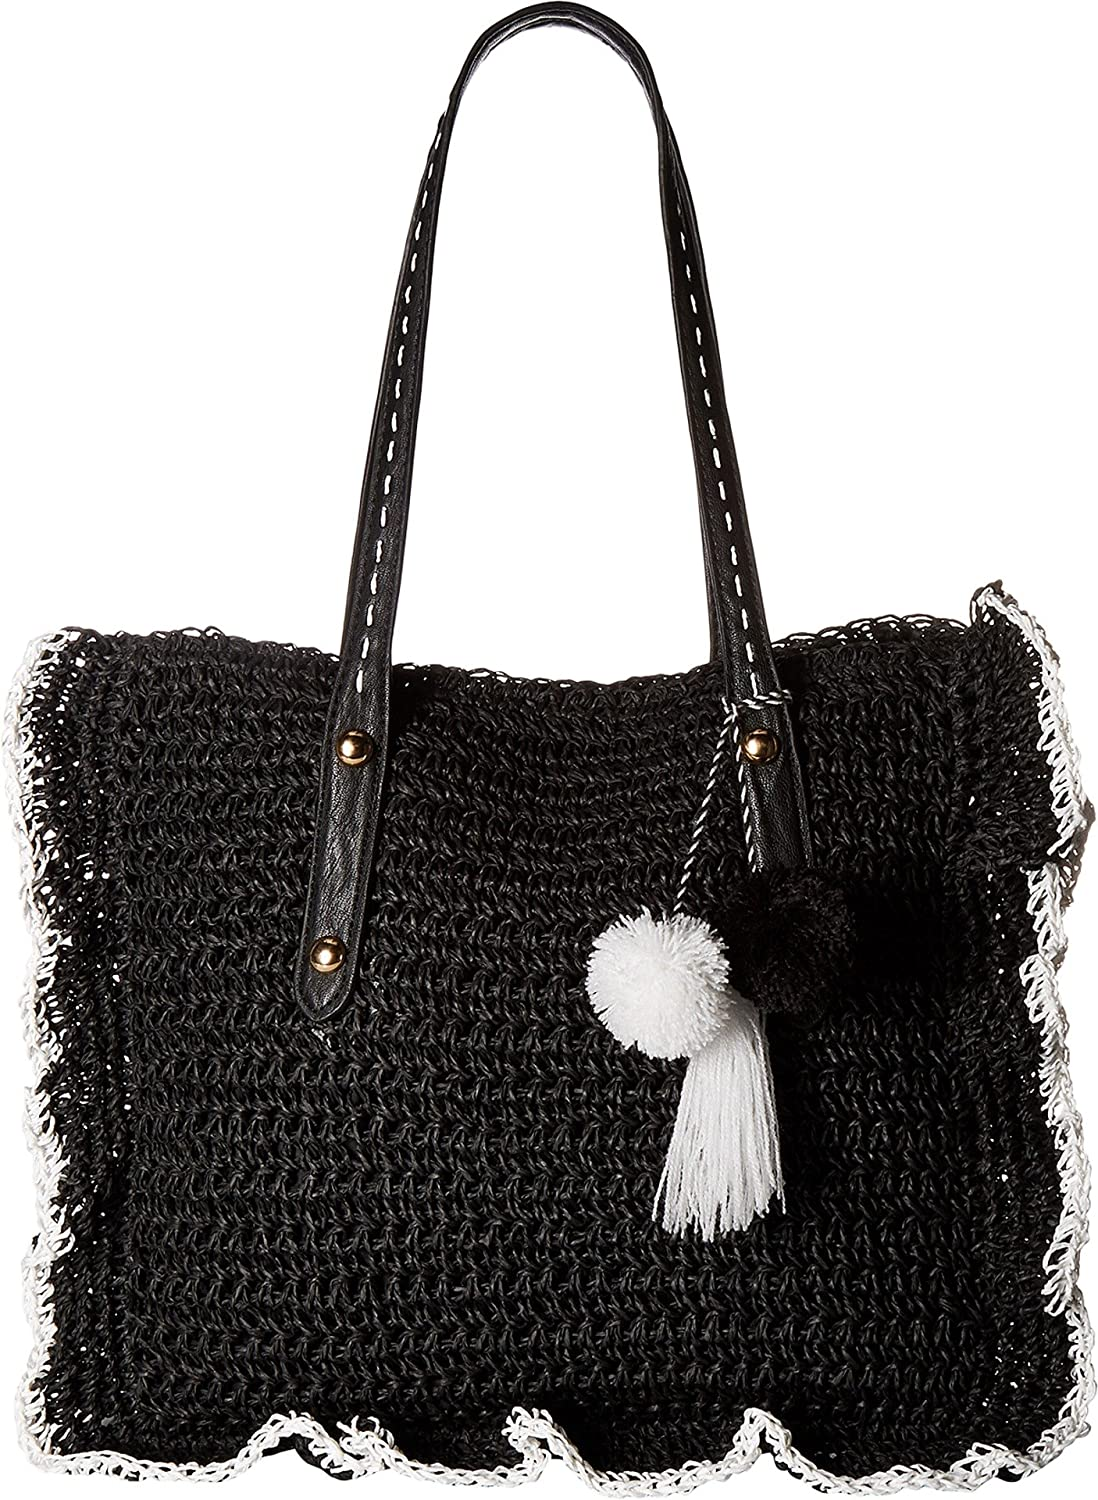 17e55a356c Jessica Simpson Women s Kalie Straw Black White One Size  Handbags   Amazon.com